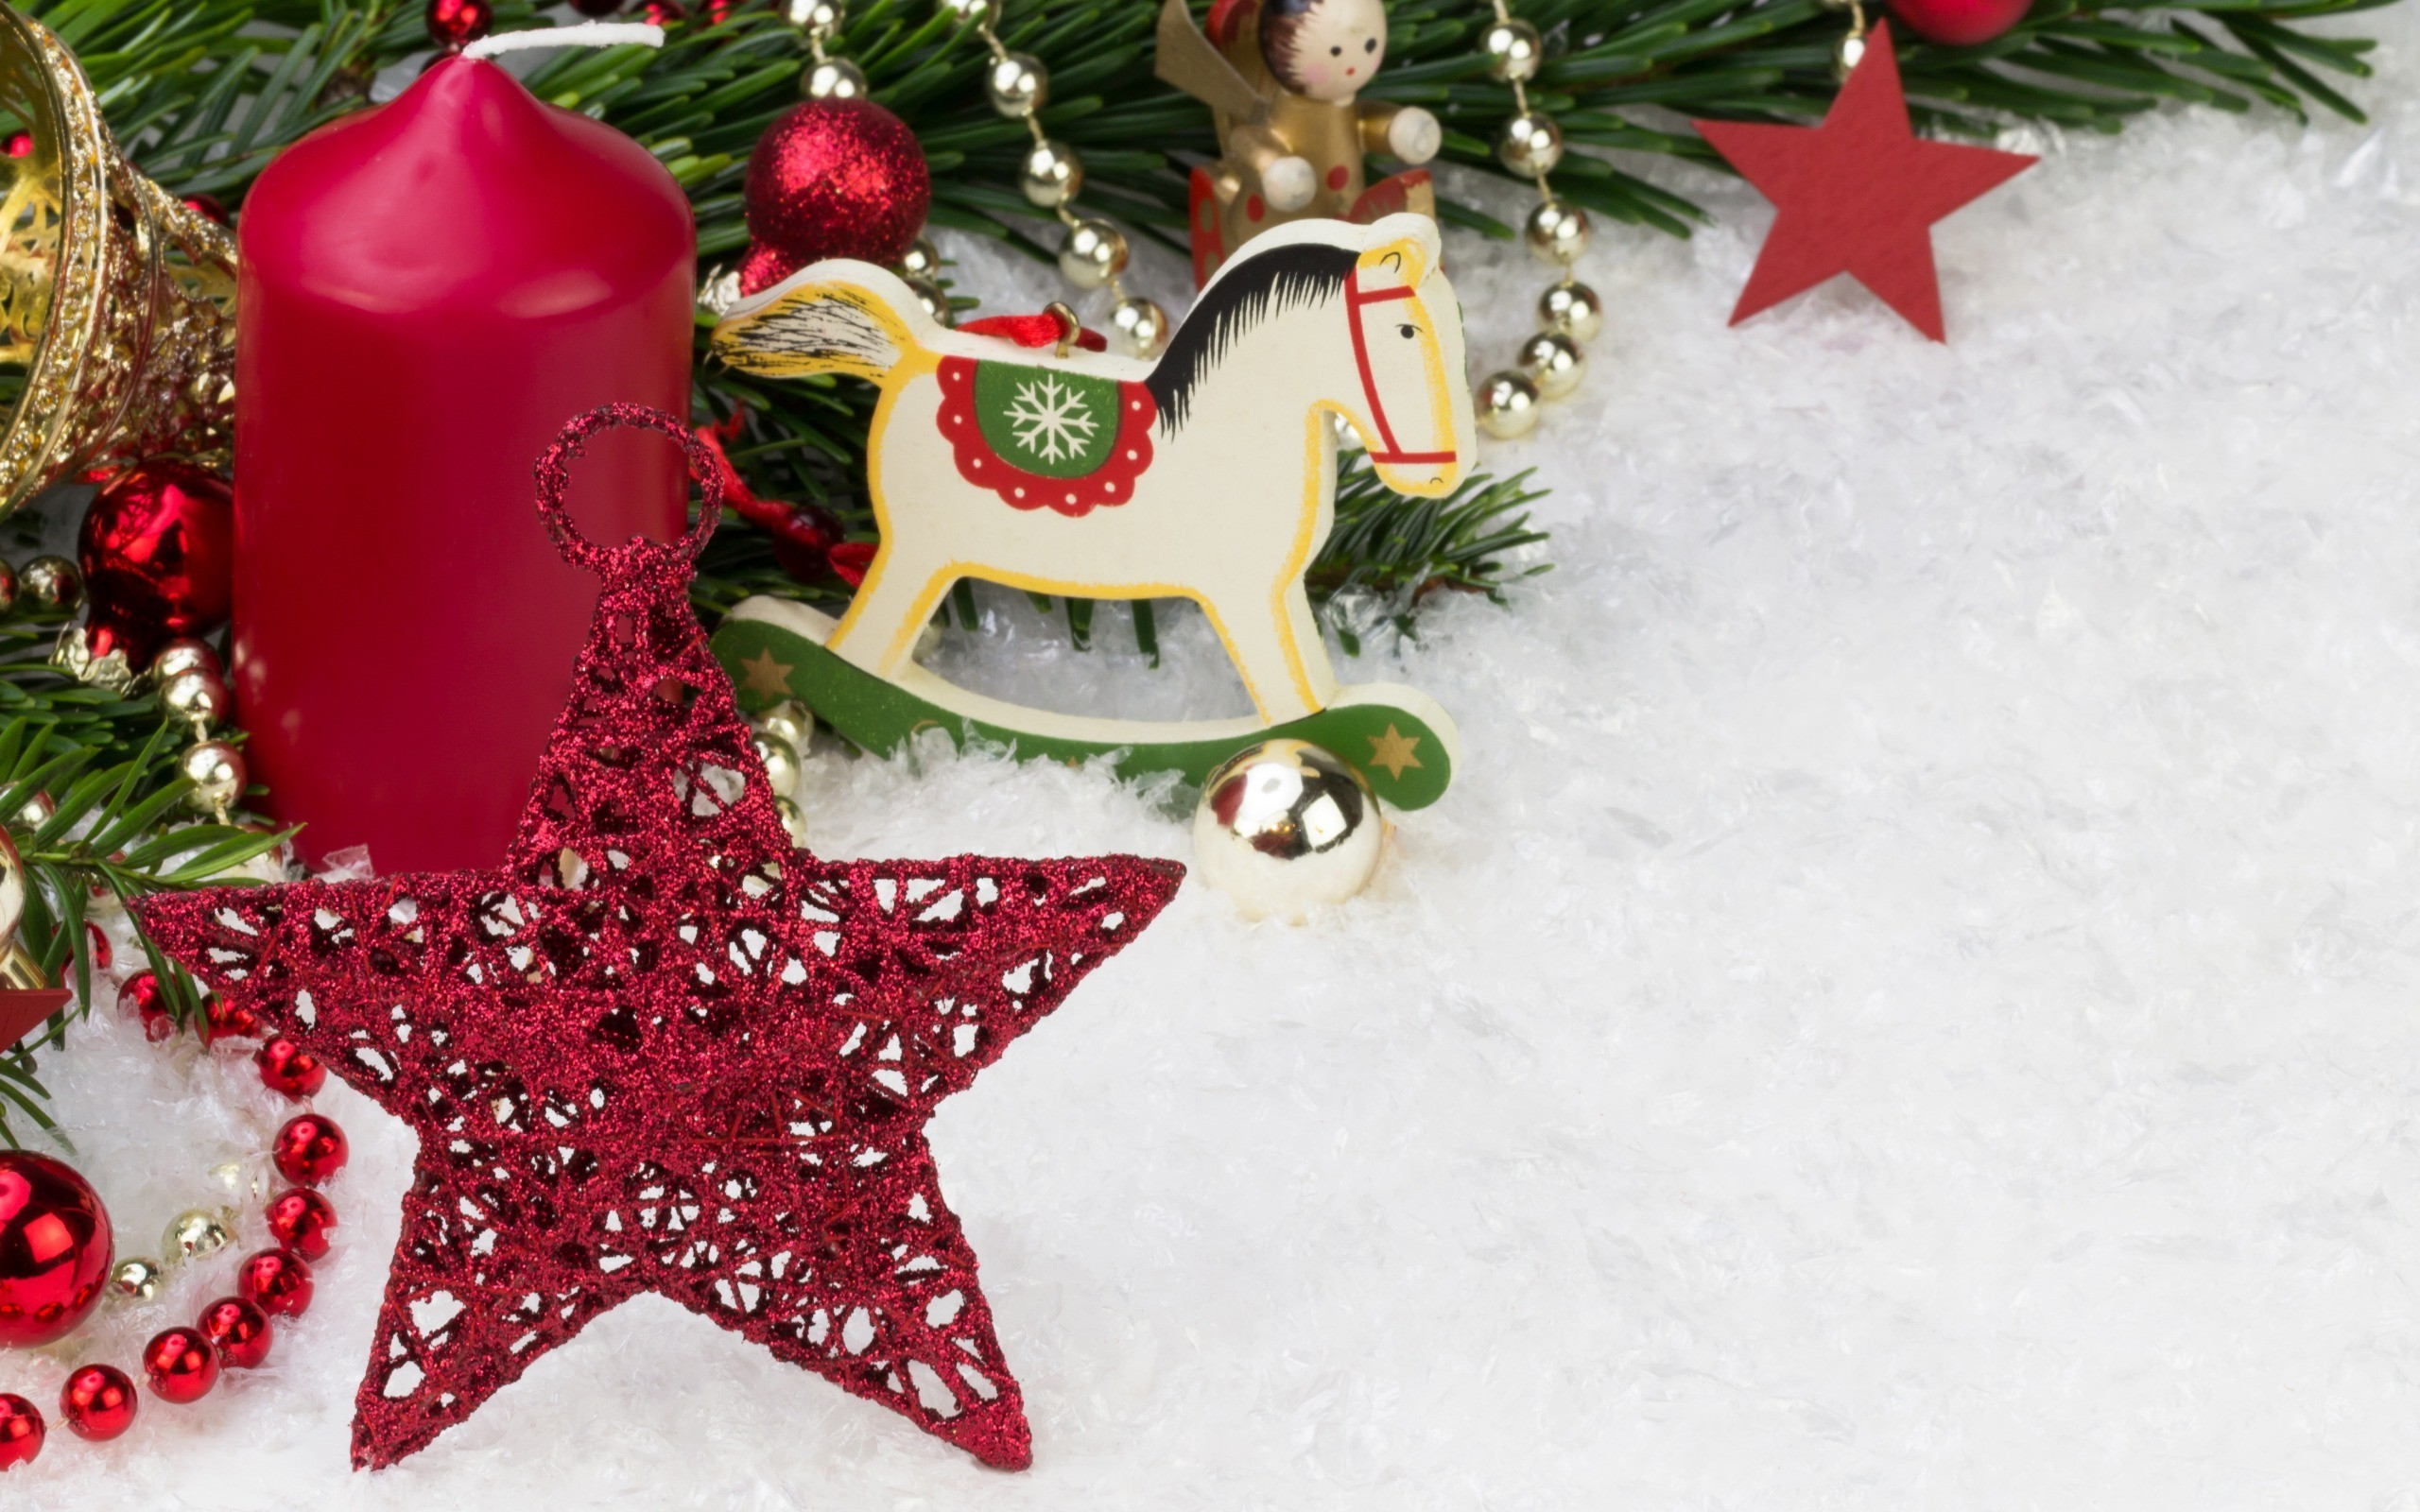 Download Happy New Year D New Year Snow Horse Decorations Stars Candles Christmas